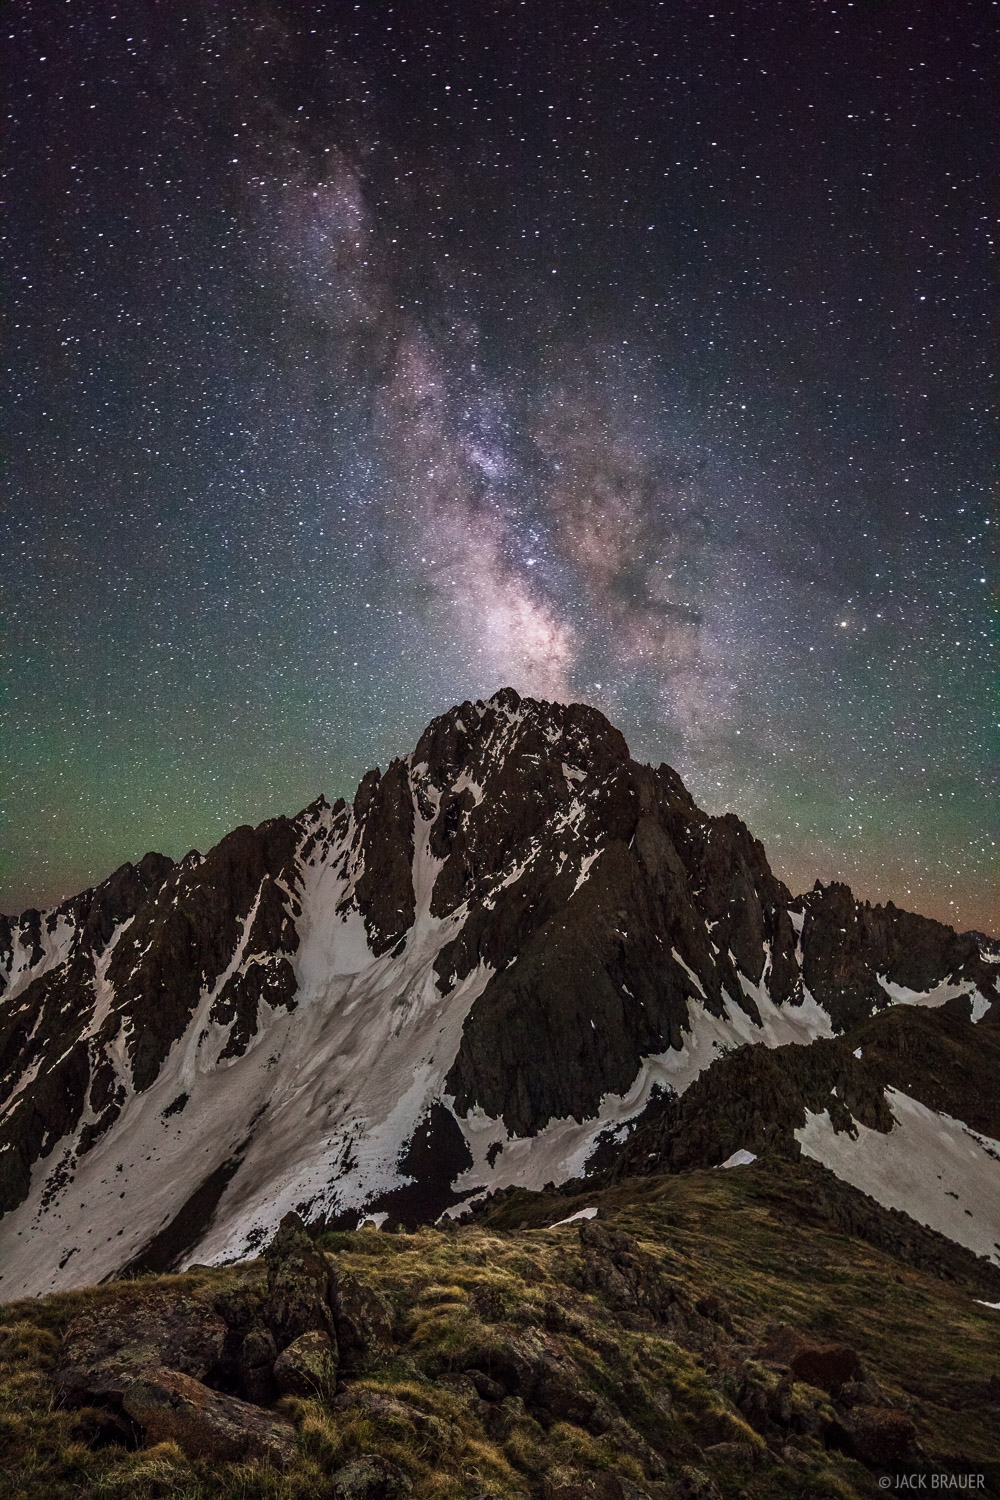 The Milky Way shines over Mt. Sneffels on a new moon night in June.